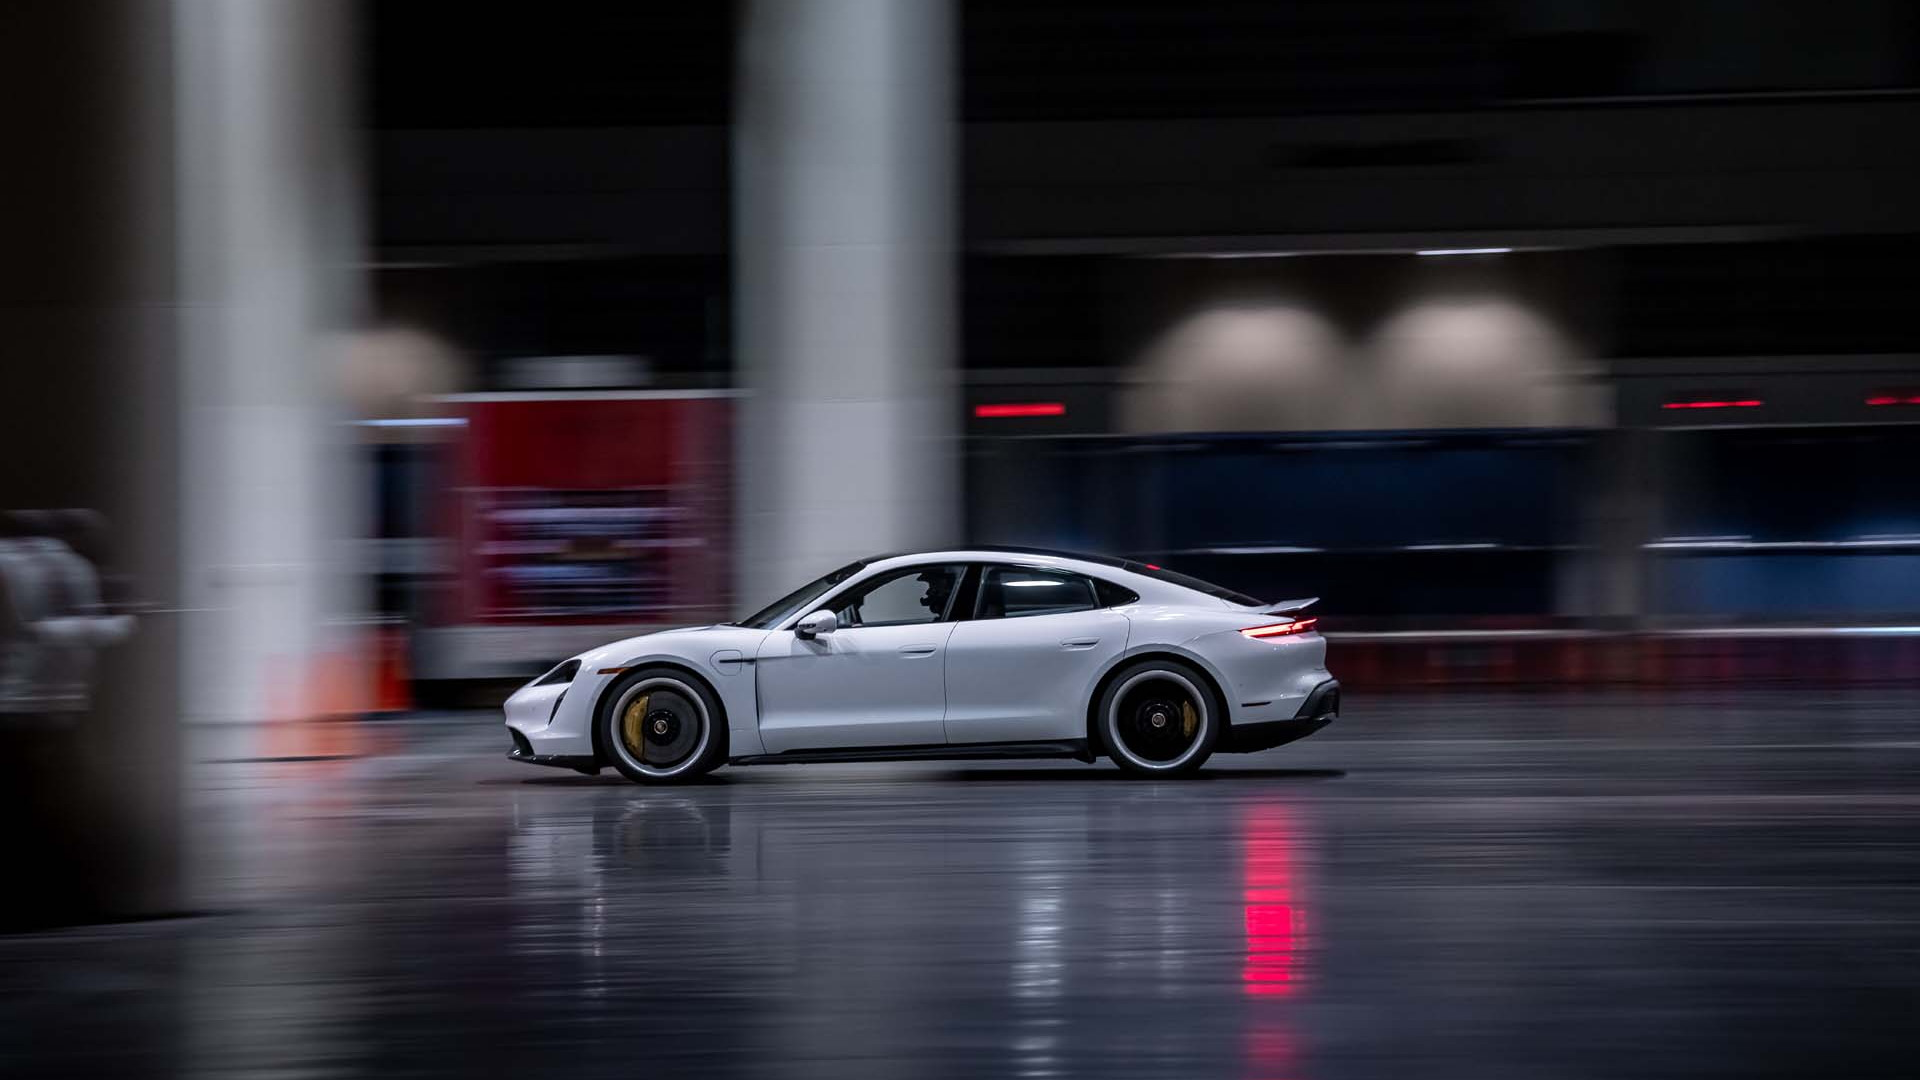 Porsche Taycan Turbo S sets indoor land speed record of 102.6 mph - February 2021